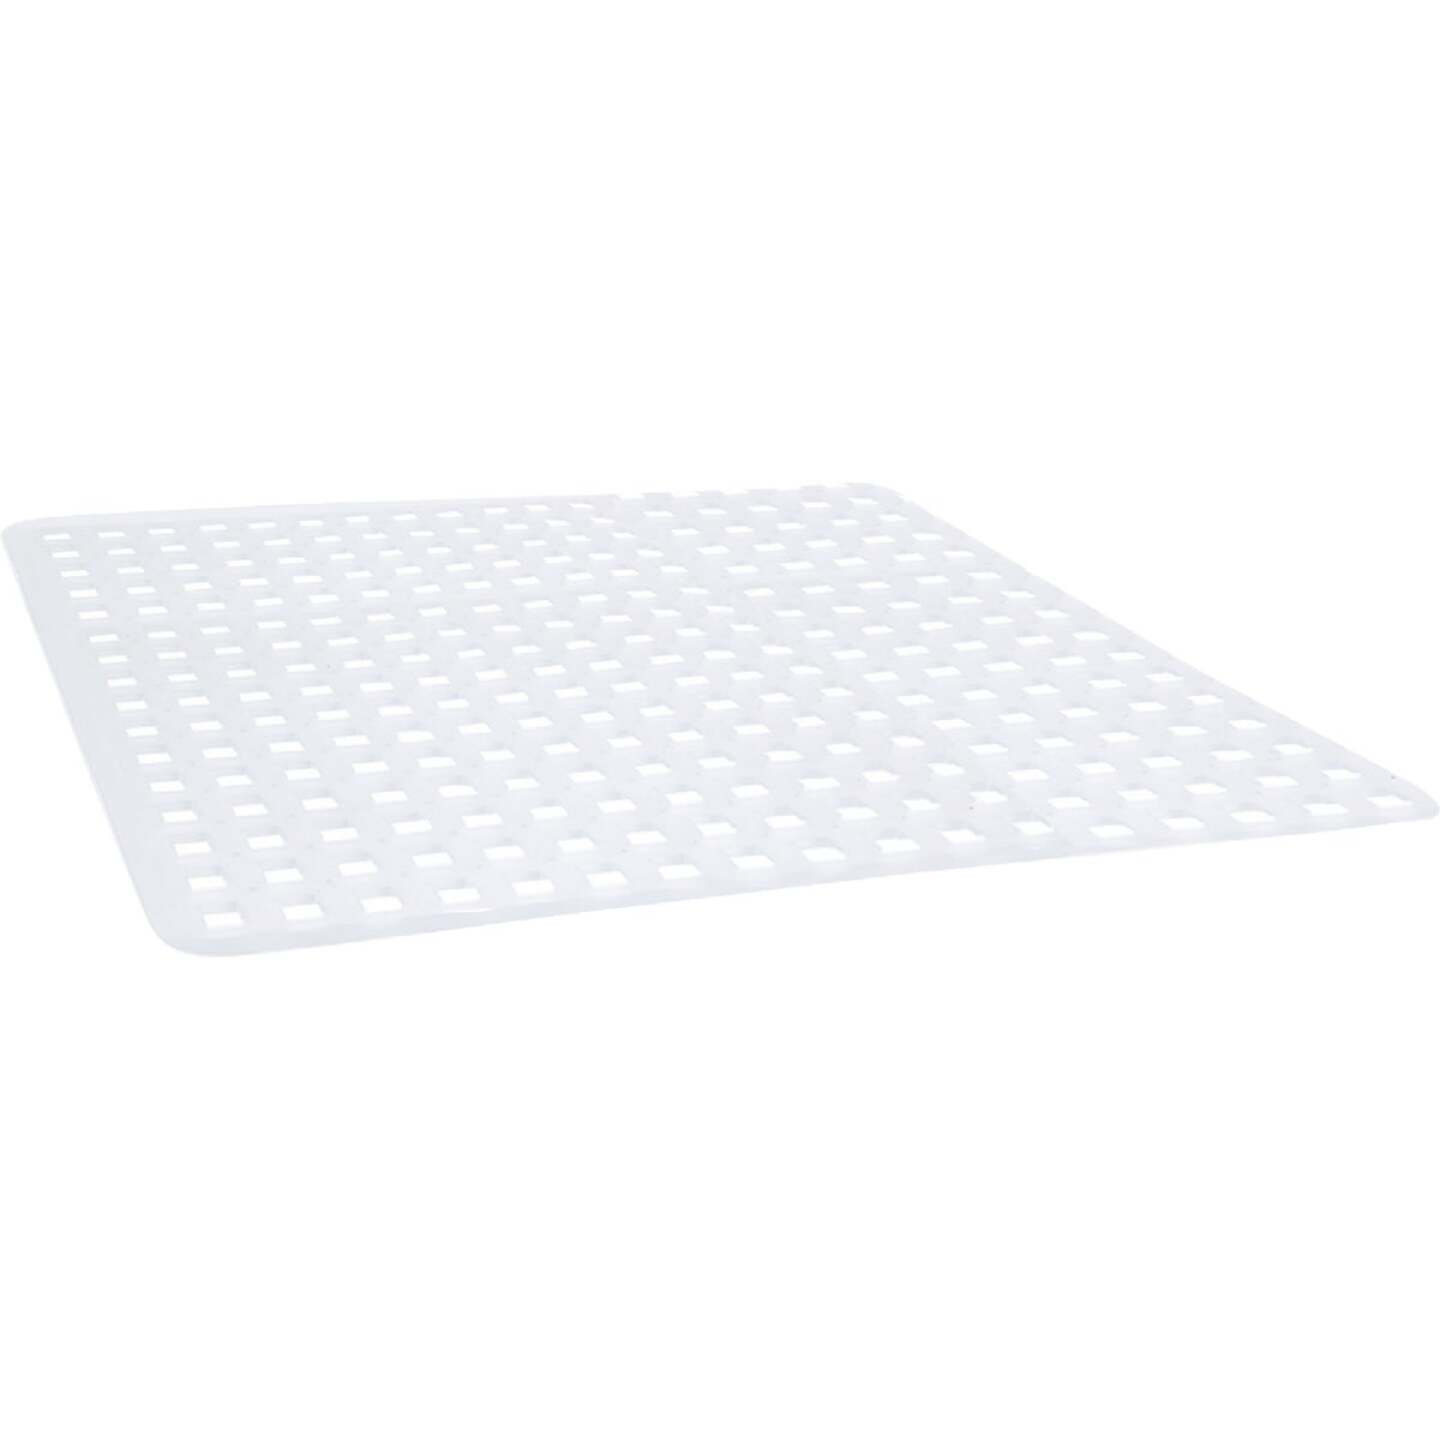 InterDesign Sinkworks 12.5 In. x 16 In. Euro Sink Mat Image 4